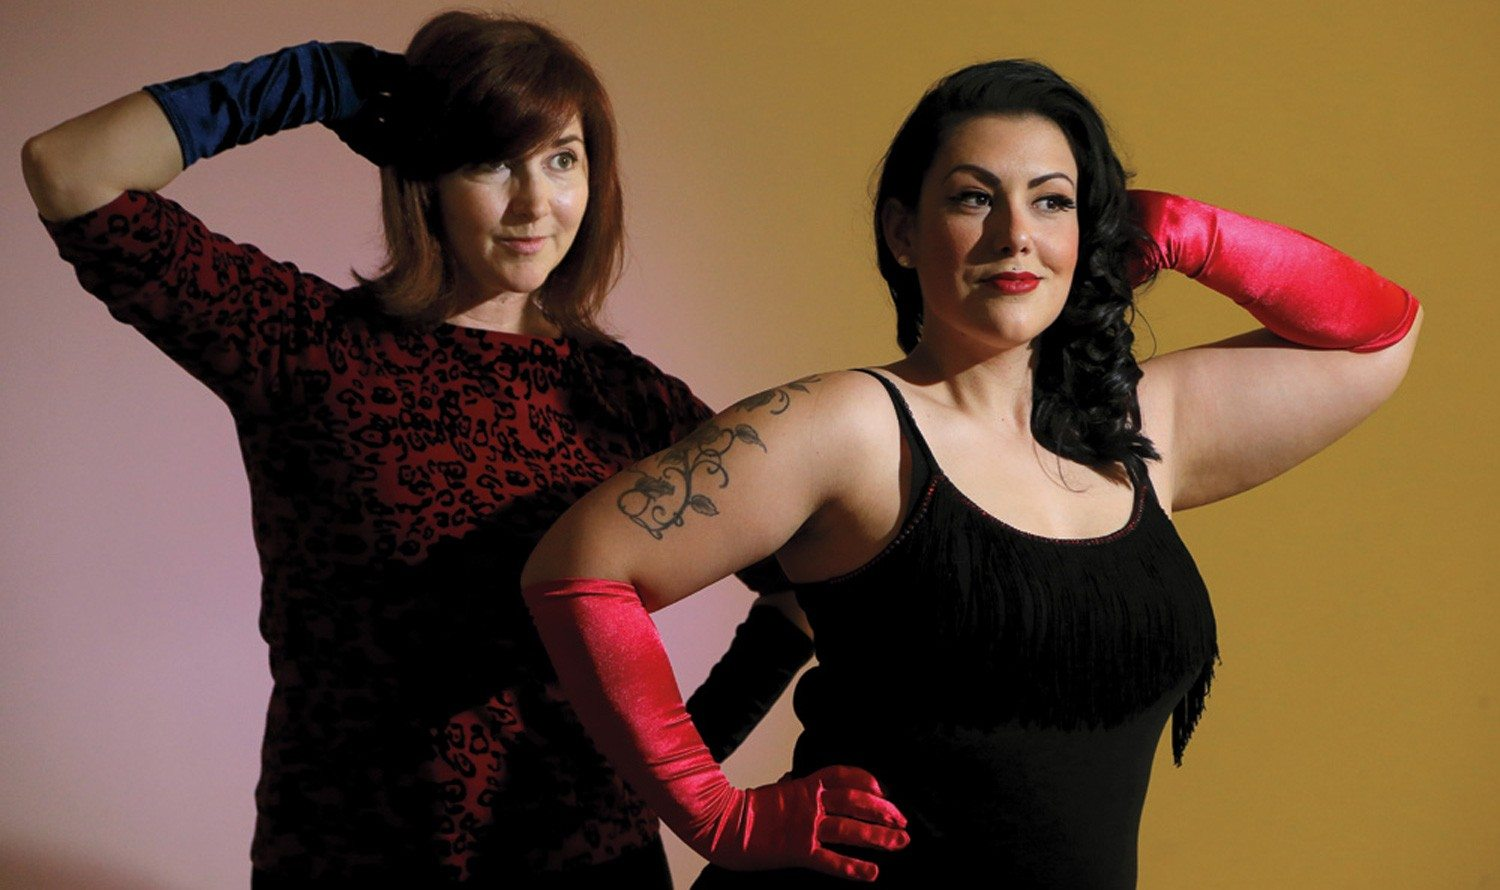 Vintage burlesque star teaches bump, grind, shimmy and shake at community centre